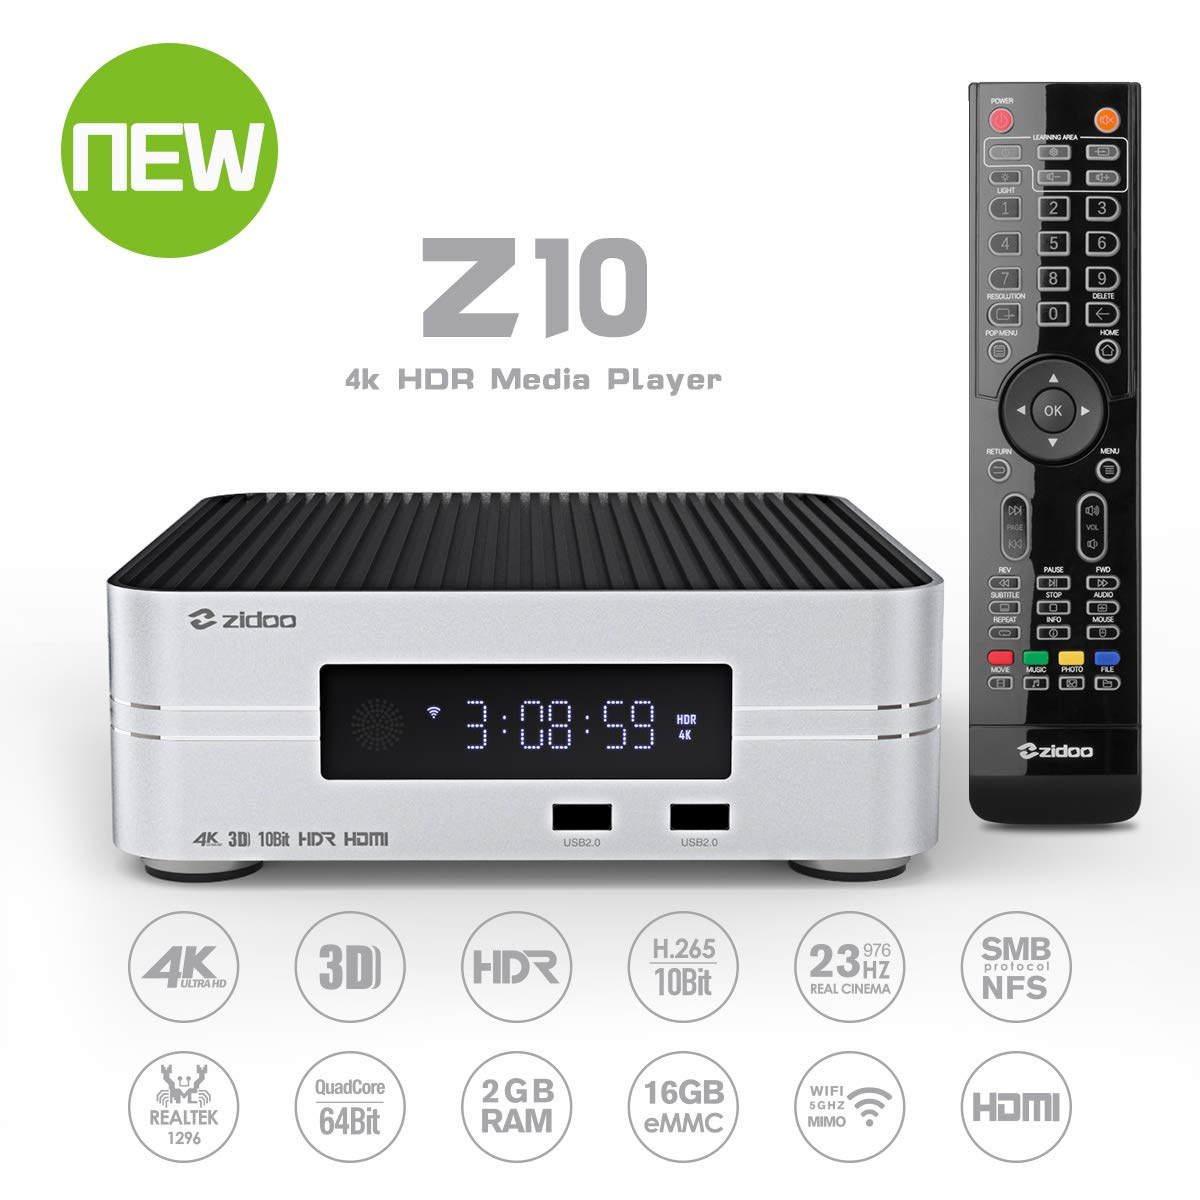 Zidoo Android 7.1 TV Box Z10 4K Smart TV Box NAS 2GB DDR 16GB Media Player Realtek 1296 4 núcleos 64 bits A53 procesador WiFi, Bluetooth 4.1 UHD Set Top Box with Remote: Amazon.es: Electrónica